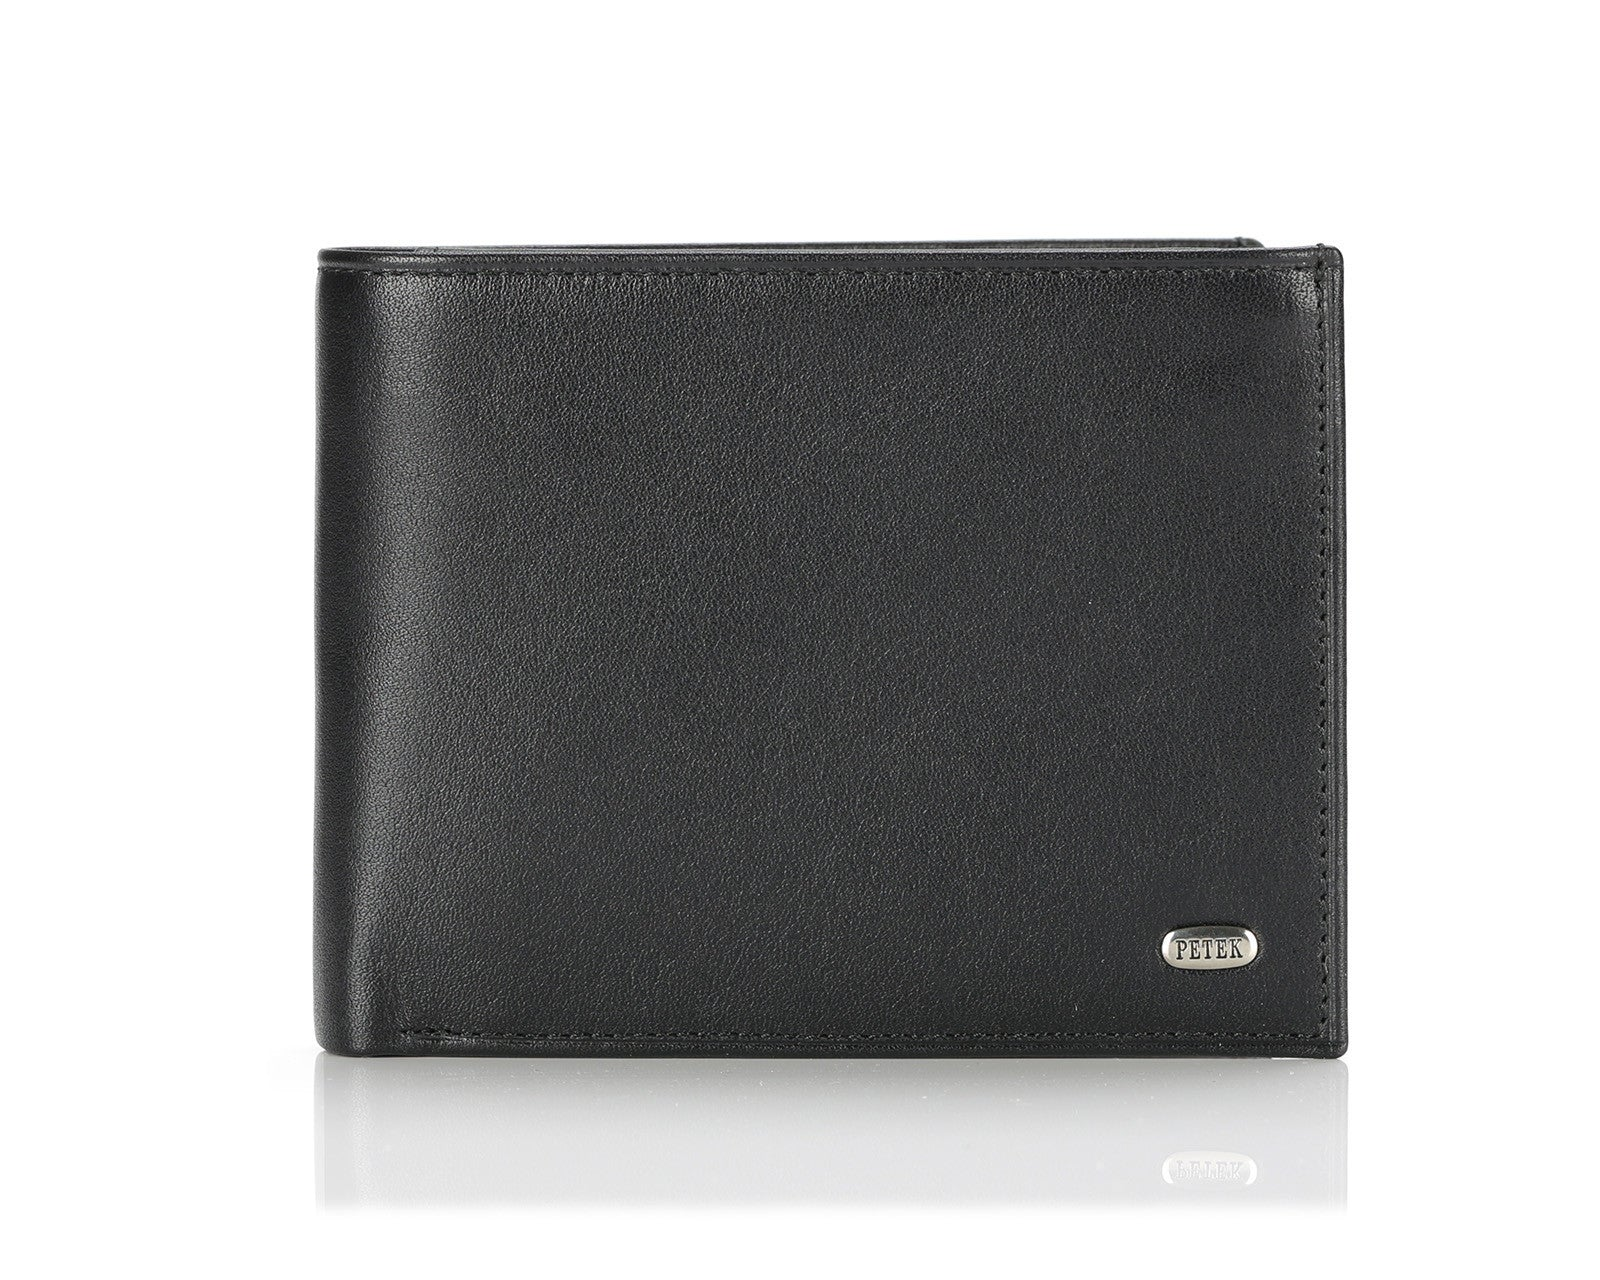 169, Petek 1855, Medium, Men's Leather Wallet